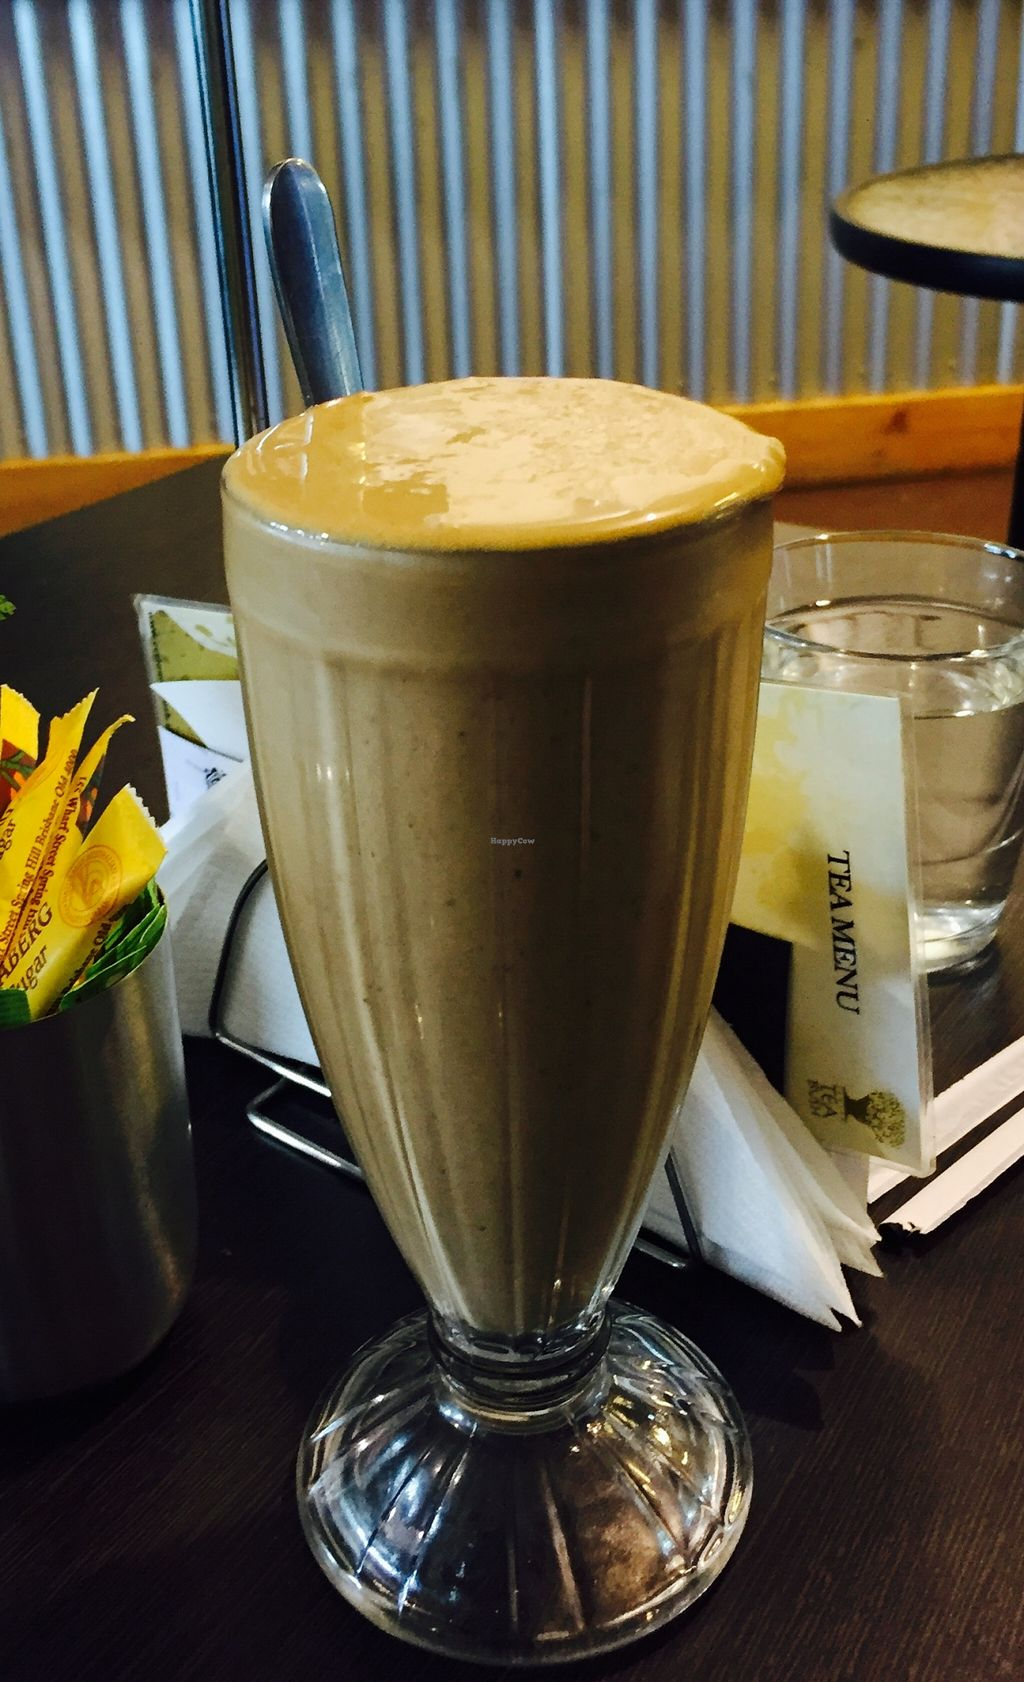 """Photo of CLOSED: Abitza  by <a href=""""/members/profile/karlaess"""">karlaess</a> <br/>Vegan Snickers smoothie with almond milk <br/> December 11, 2015  - <a href='/contact/abuse/image/66922/127984'>Report</a>"""